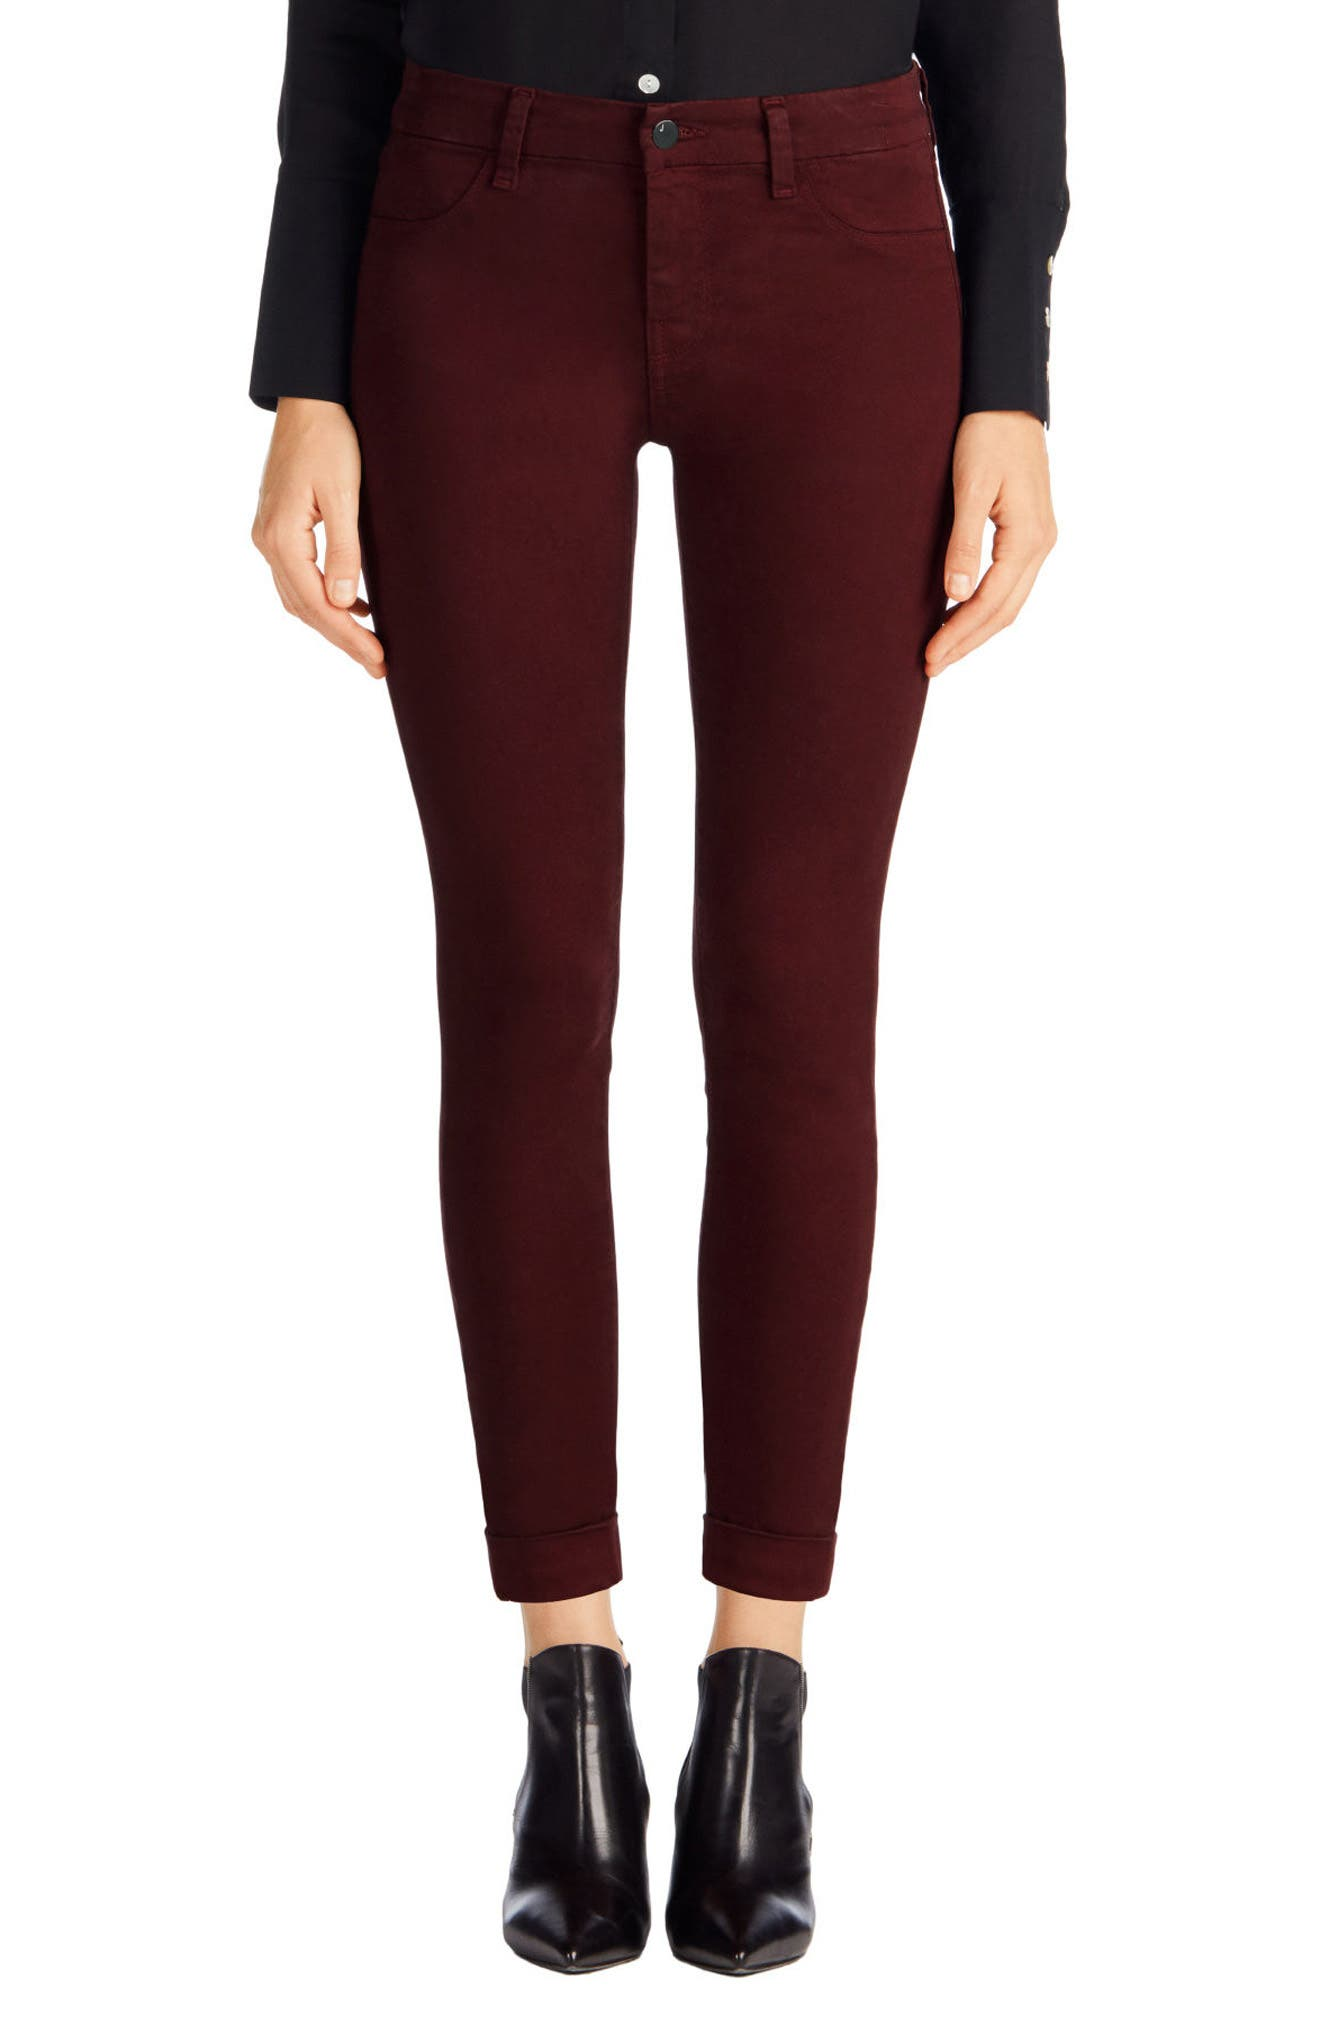 'Anja' Cuffed Crop Skinny Jeans,                             Alternate thumbnail 14, color,